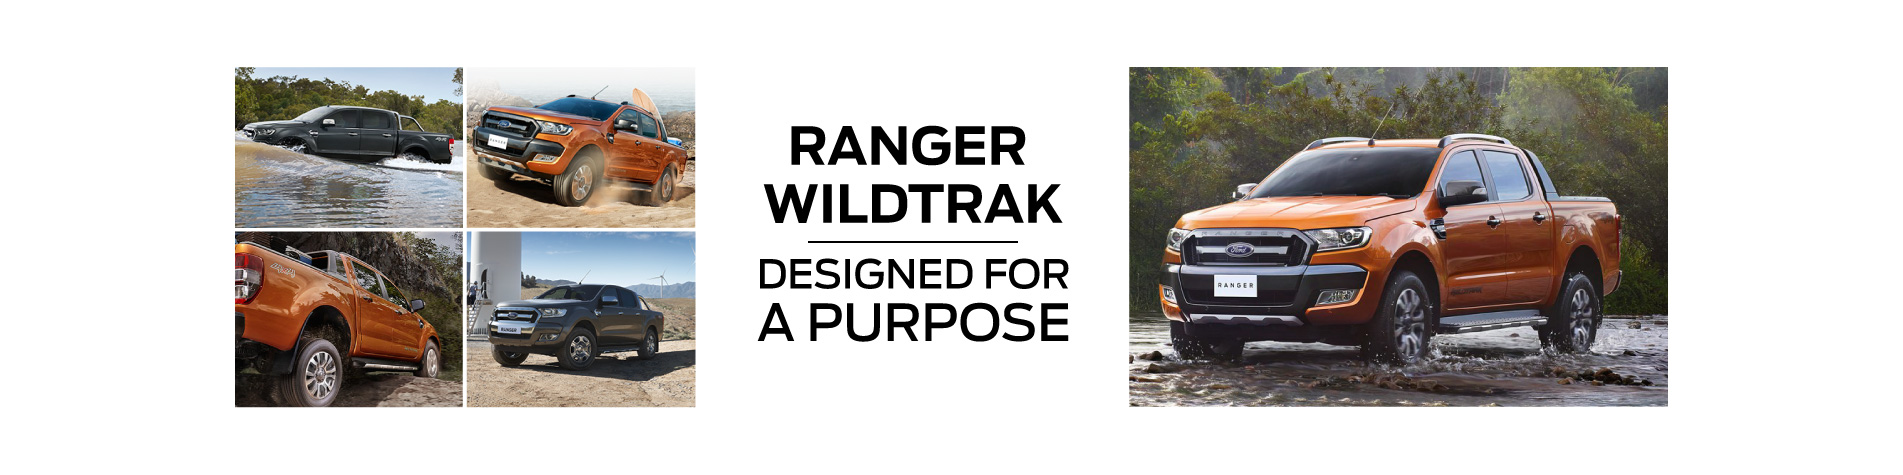 ranger-wildtrak-28august2015-v2